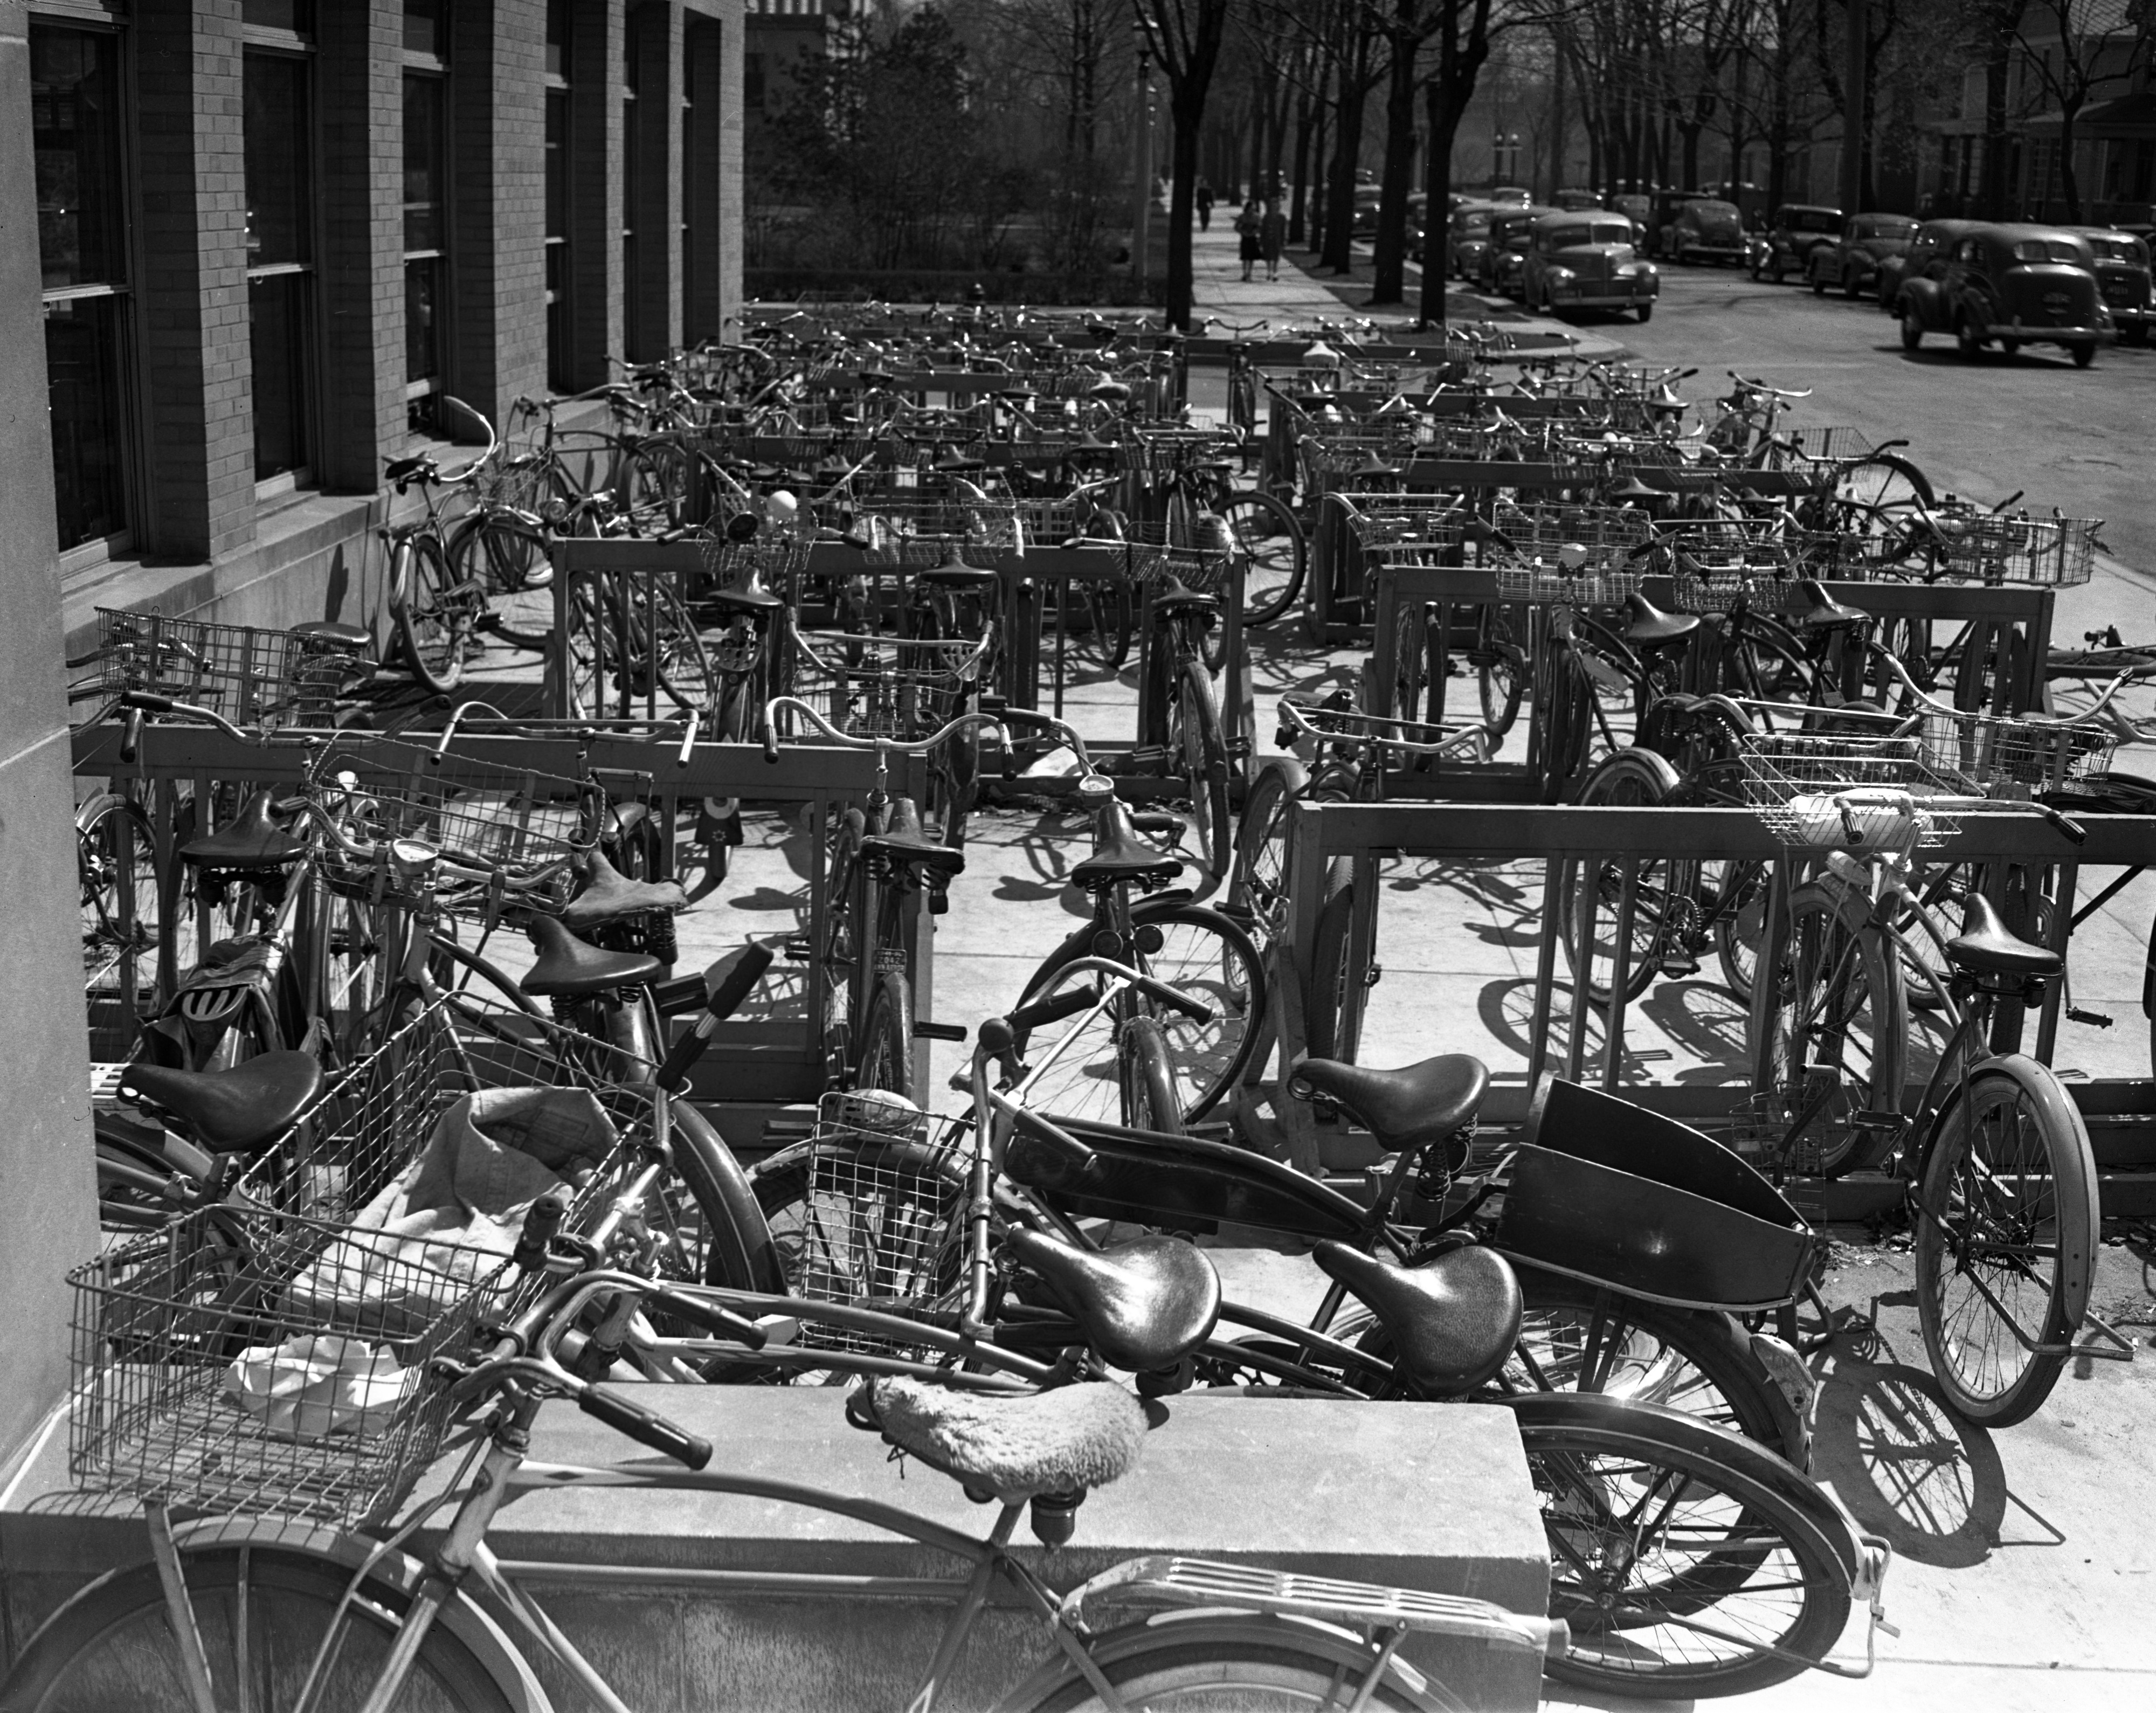 Bicycles at Ann Arbor High School, April 1942 image